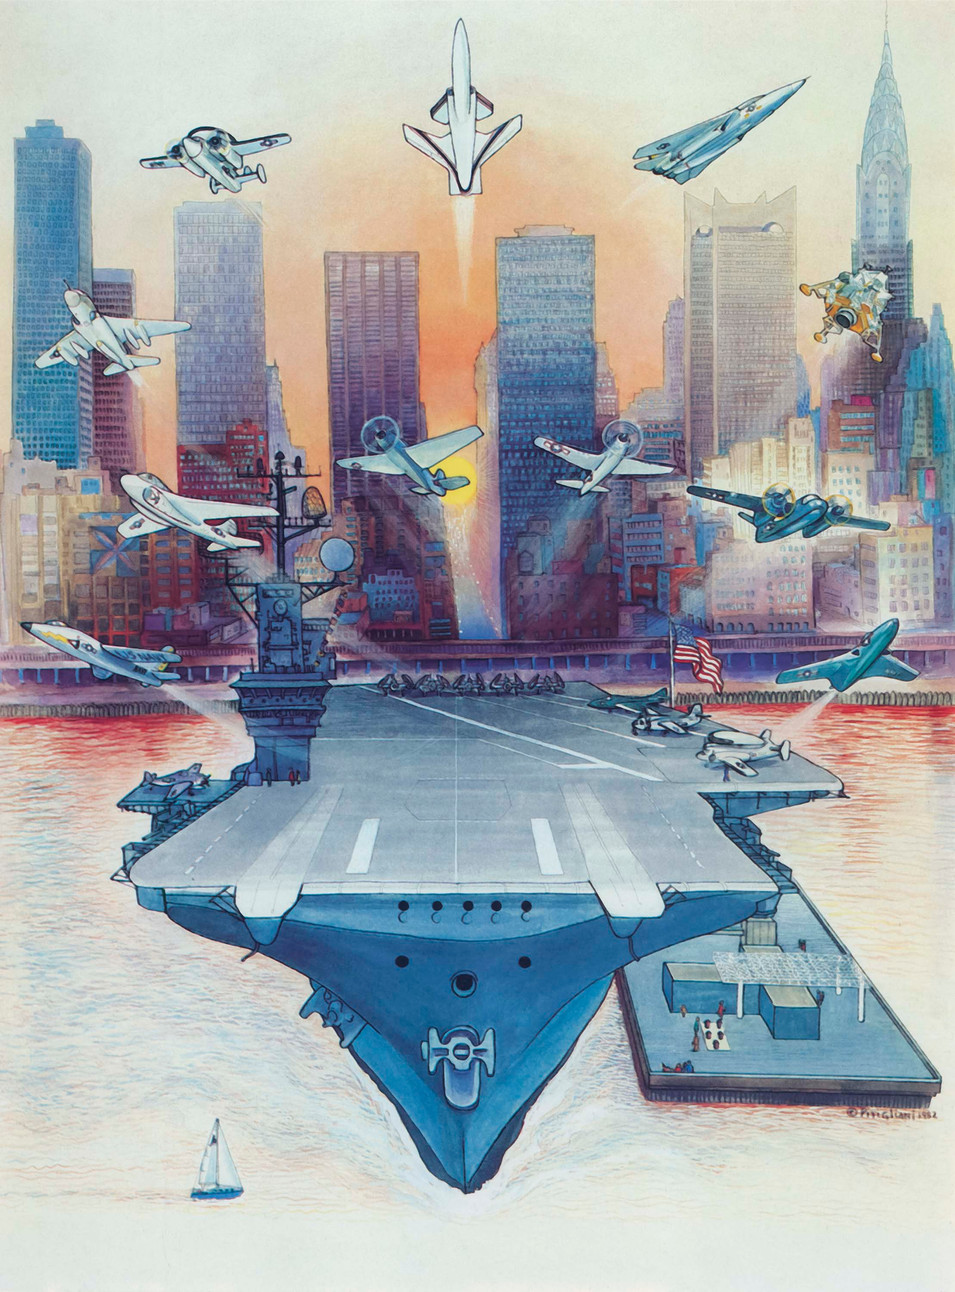 Intrepid, 1982